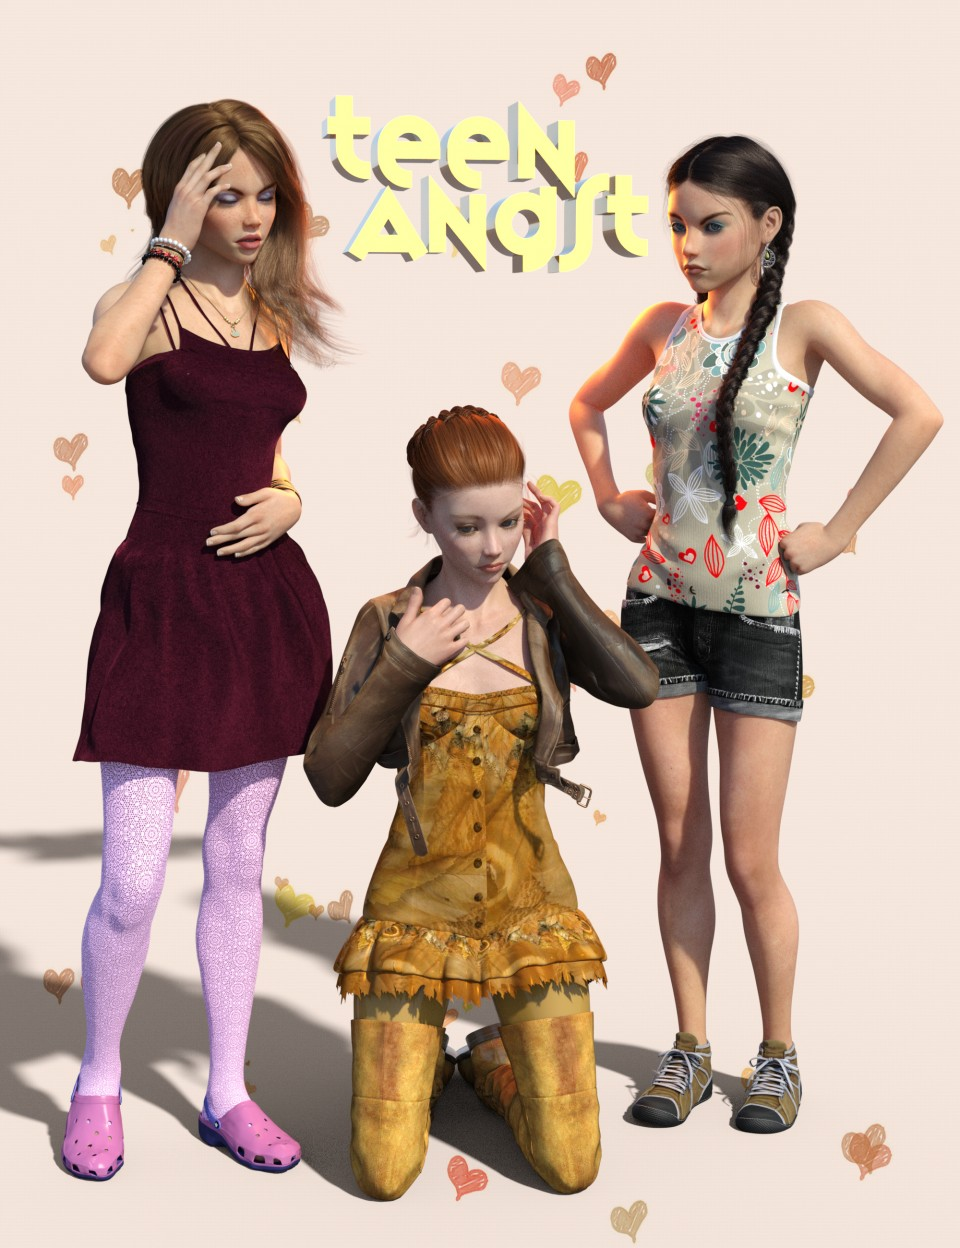 Teen Angst Poses and Expressions for Teen Kaylee 8 and Teen Josie 8_DAZ3D下载站